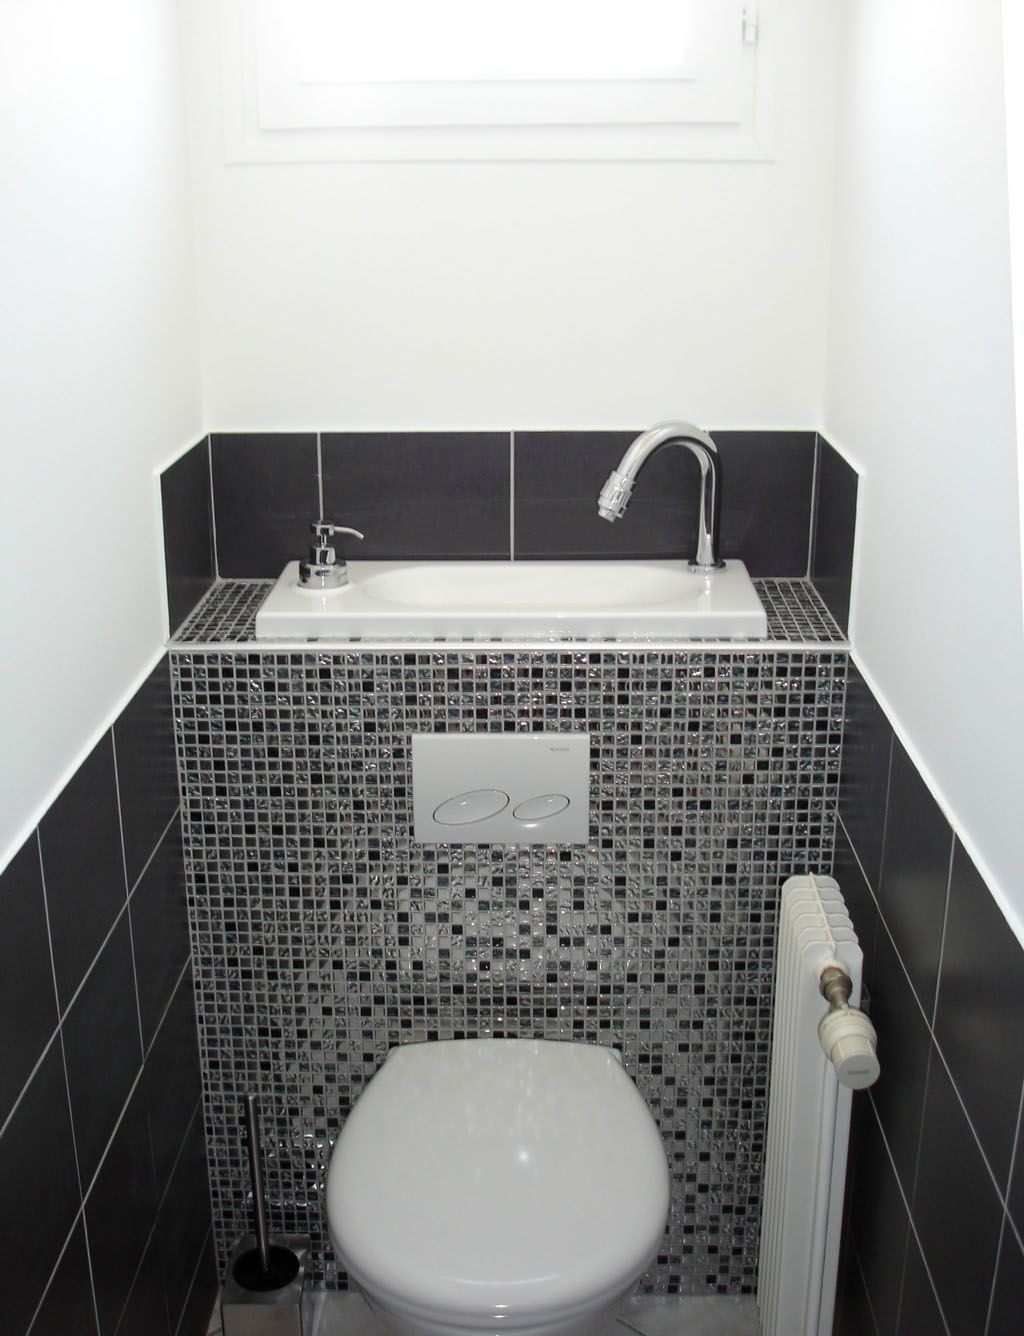 Wc Suspendu Geberit Avec Lave Main Wc Lave Main Deco Bathr